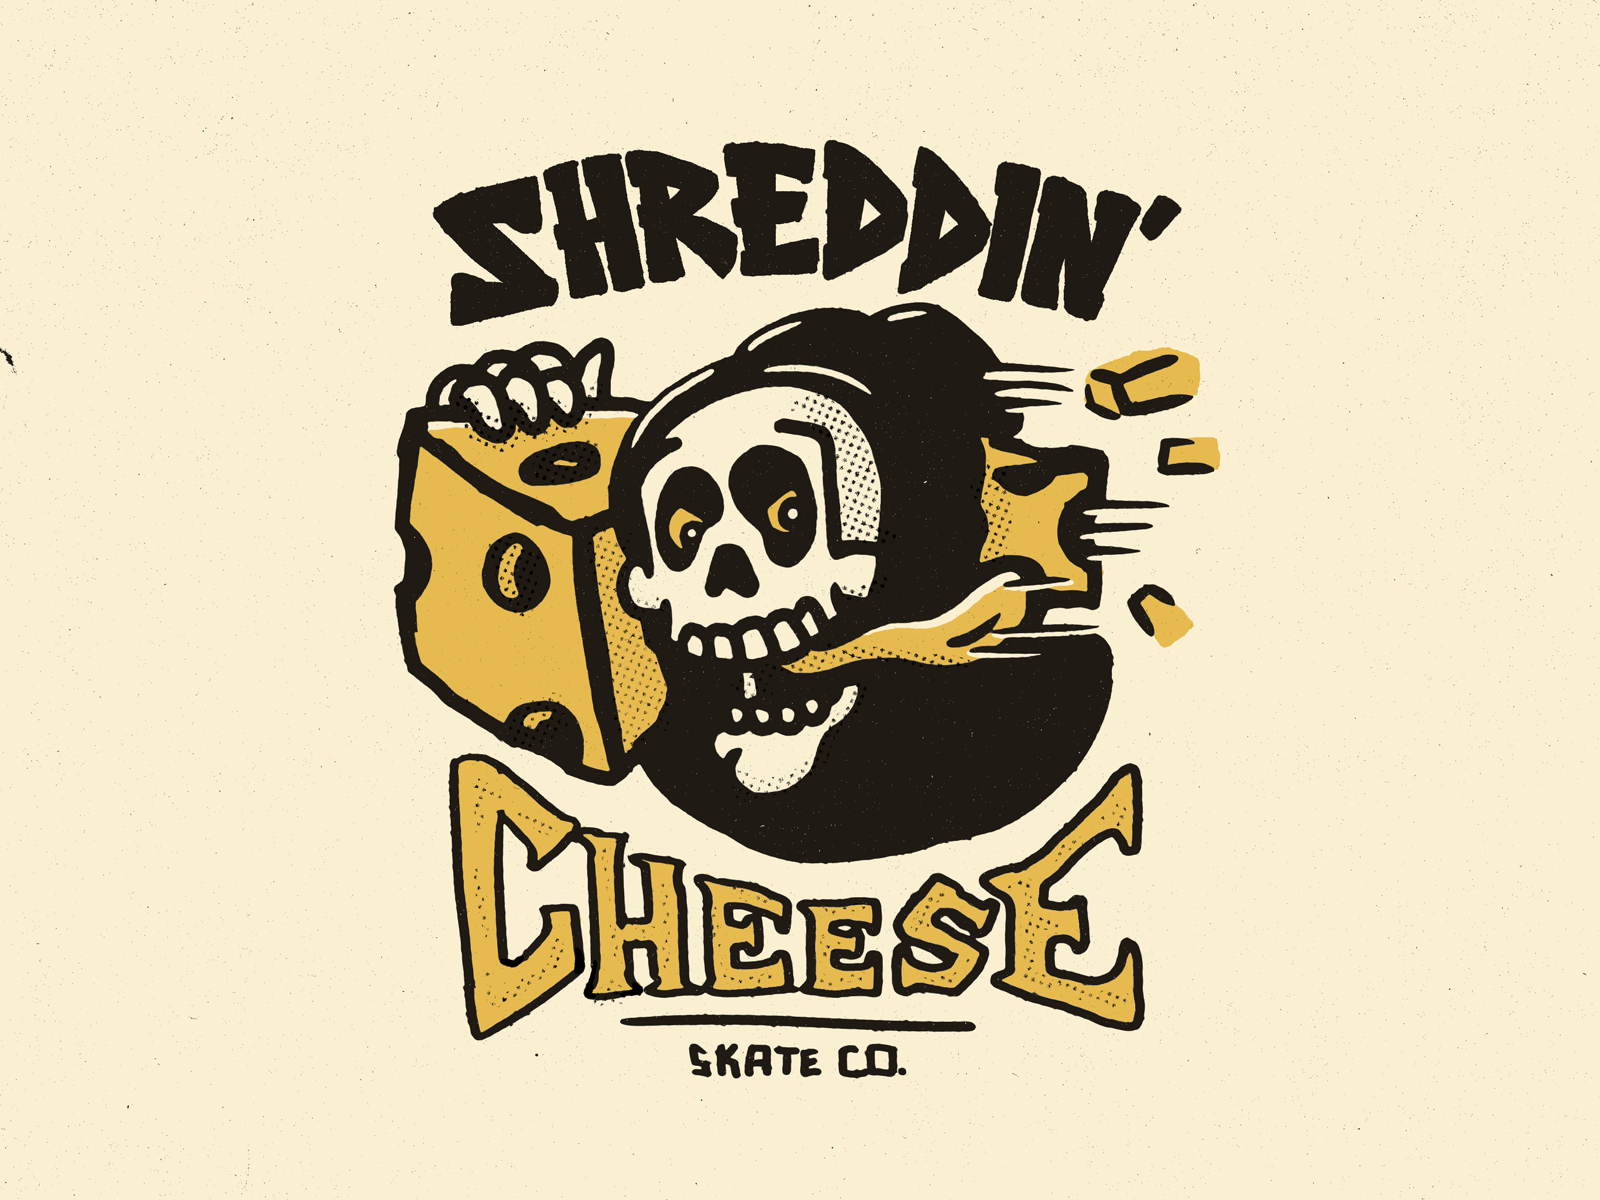 SBS_IM_19_SHREDDIN_CHEESE_19_PRIMARY_MARK_1.png